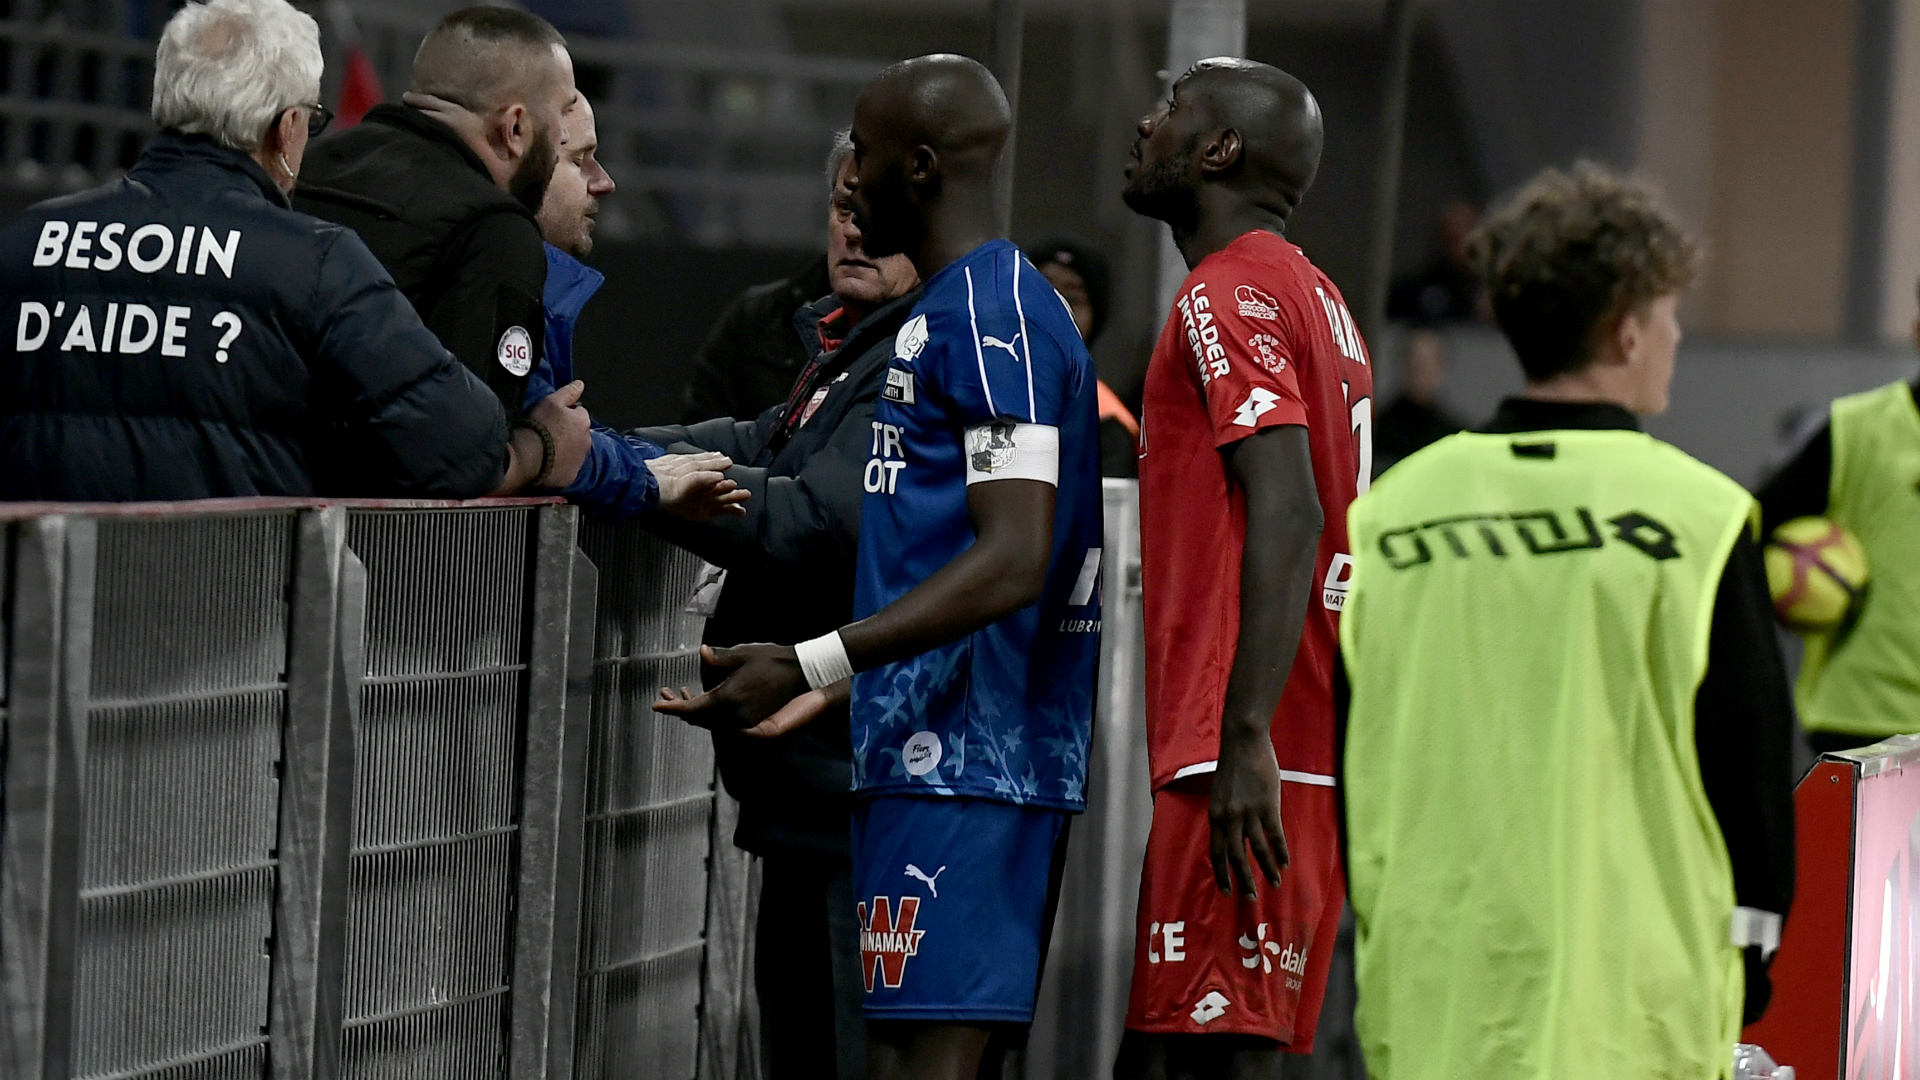 Dijon-Amiens match halted following racist abuse of Prince Gouano